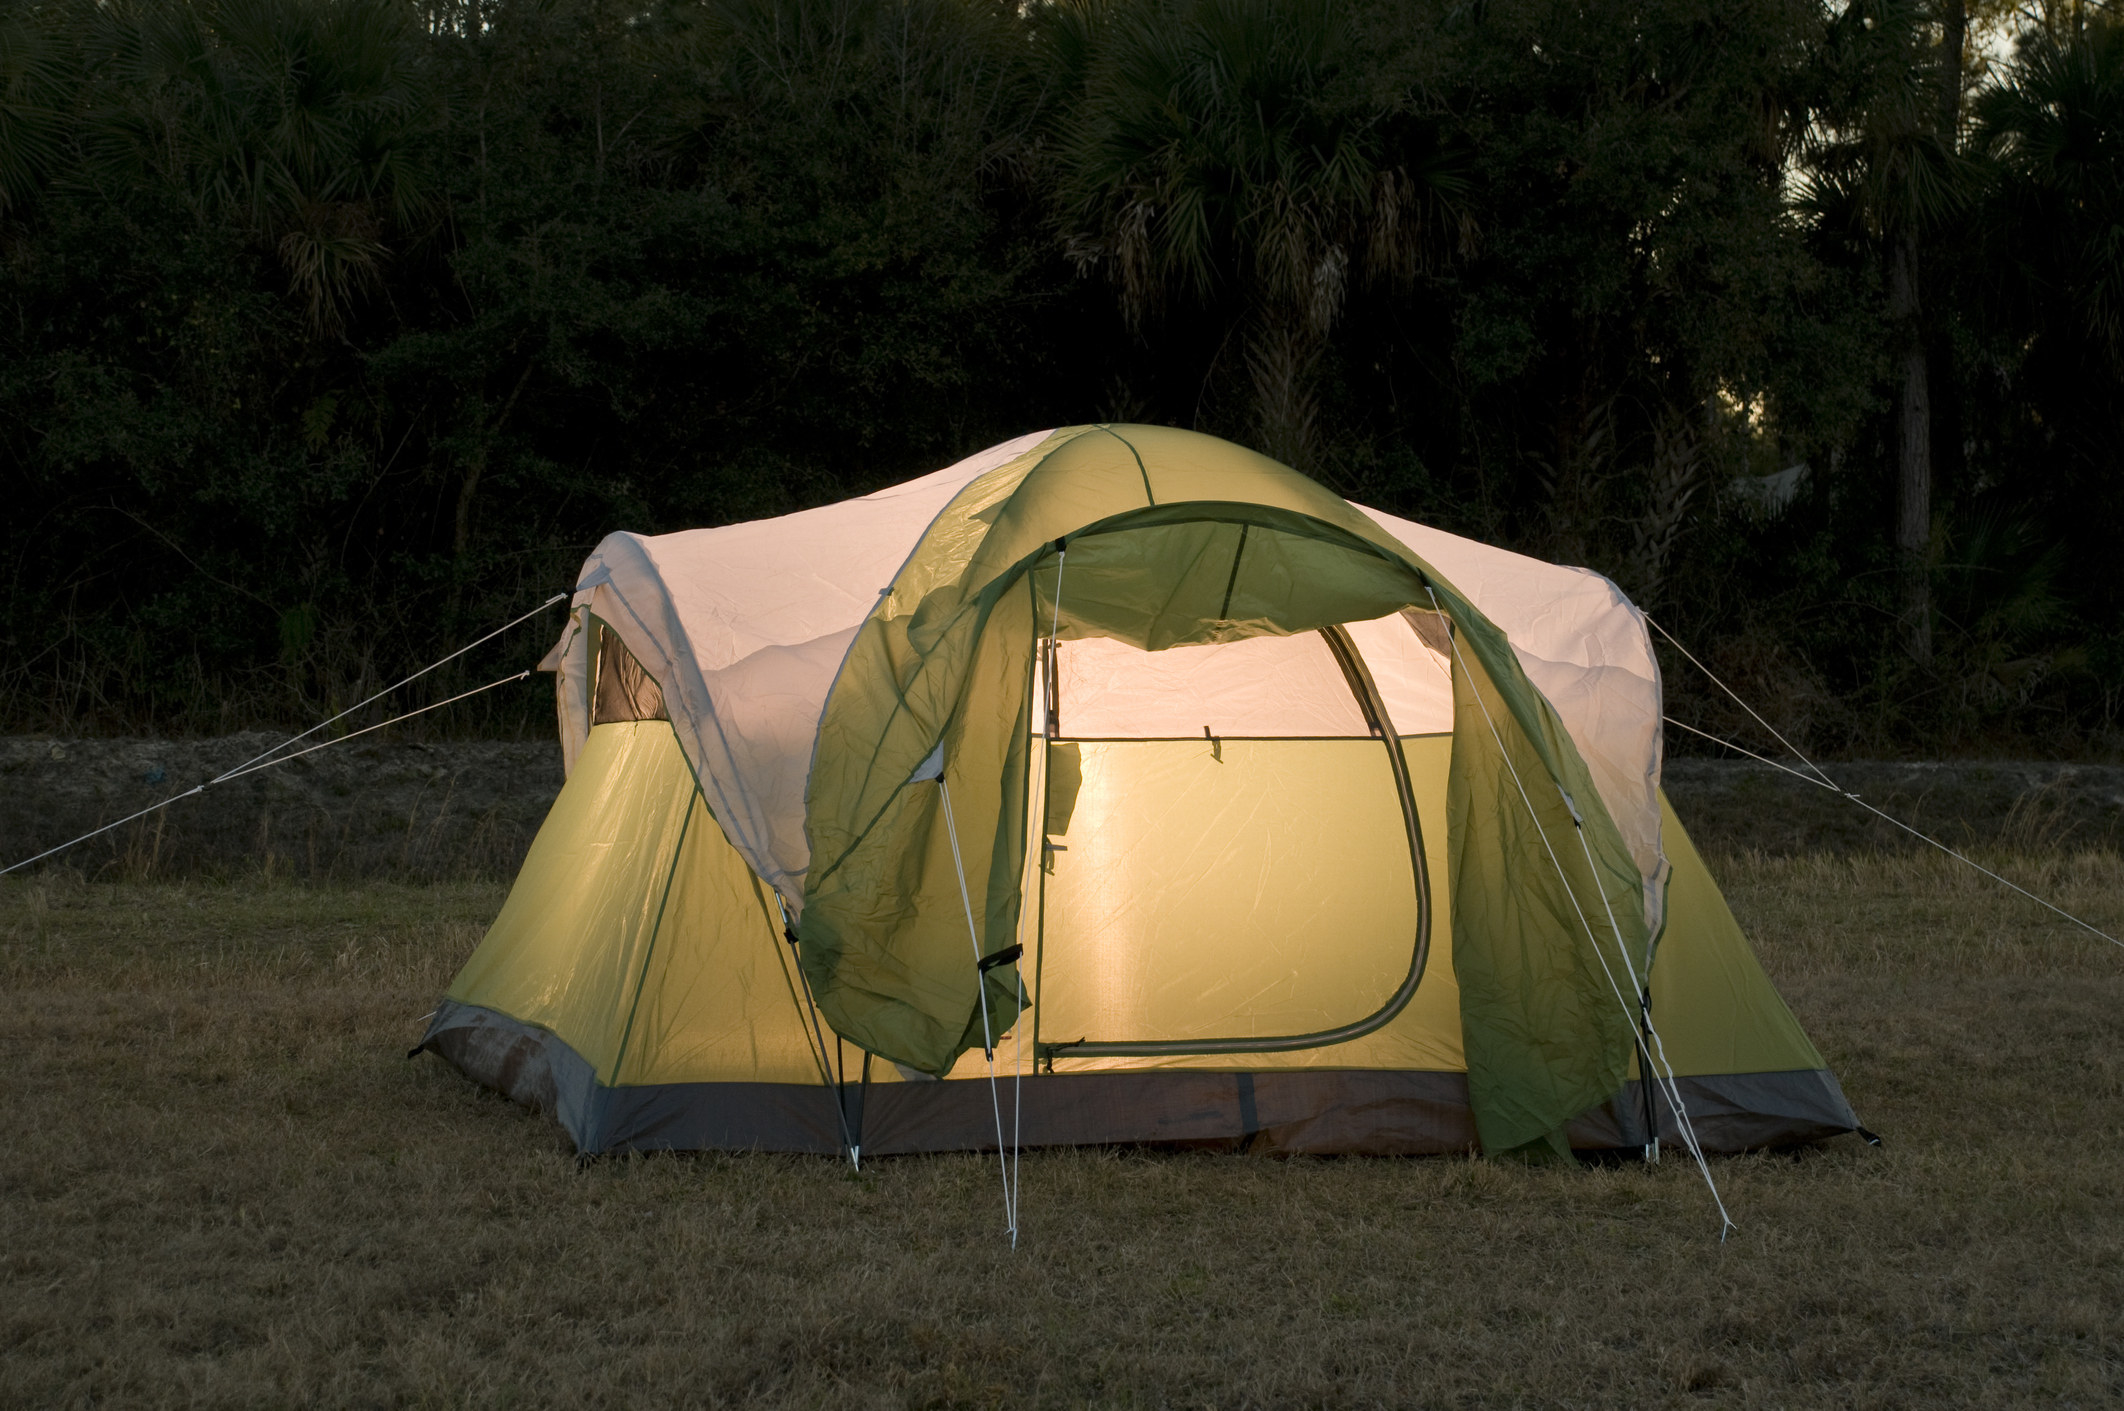 photo of a green tent outdoors during the evening